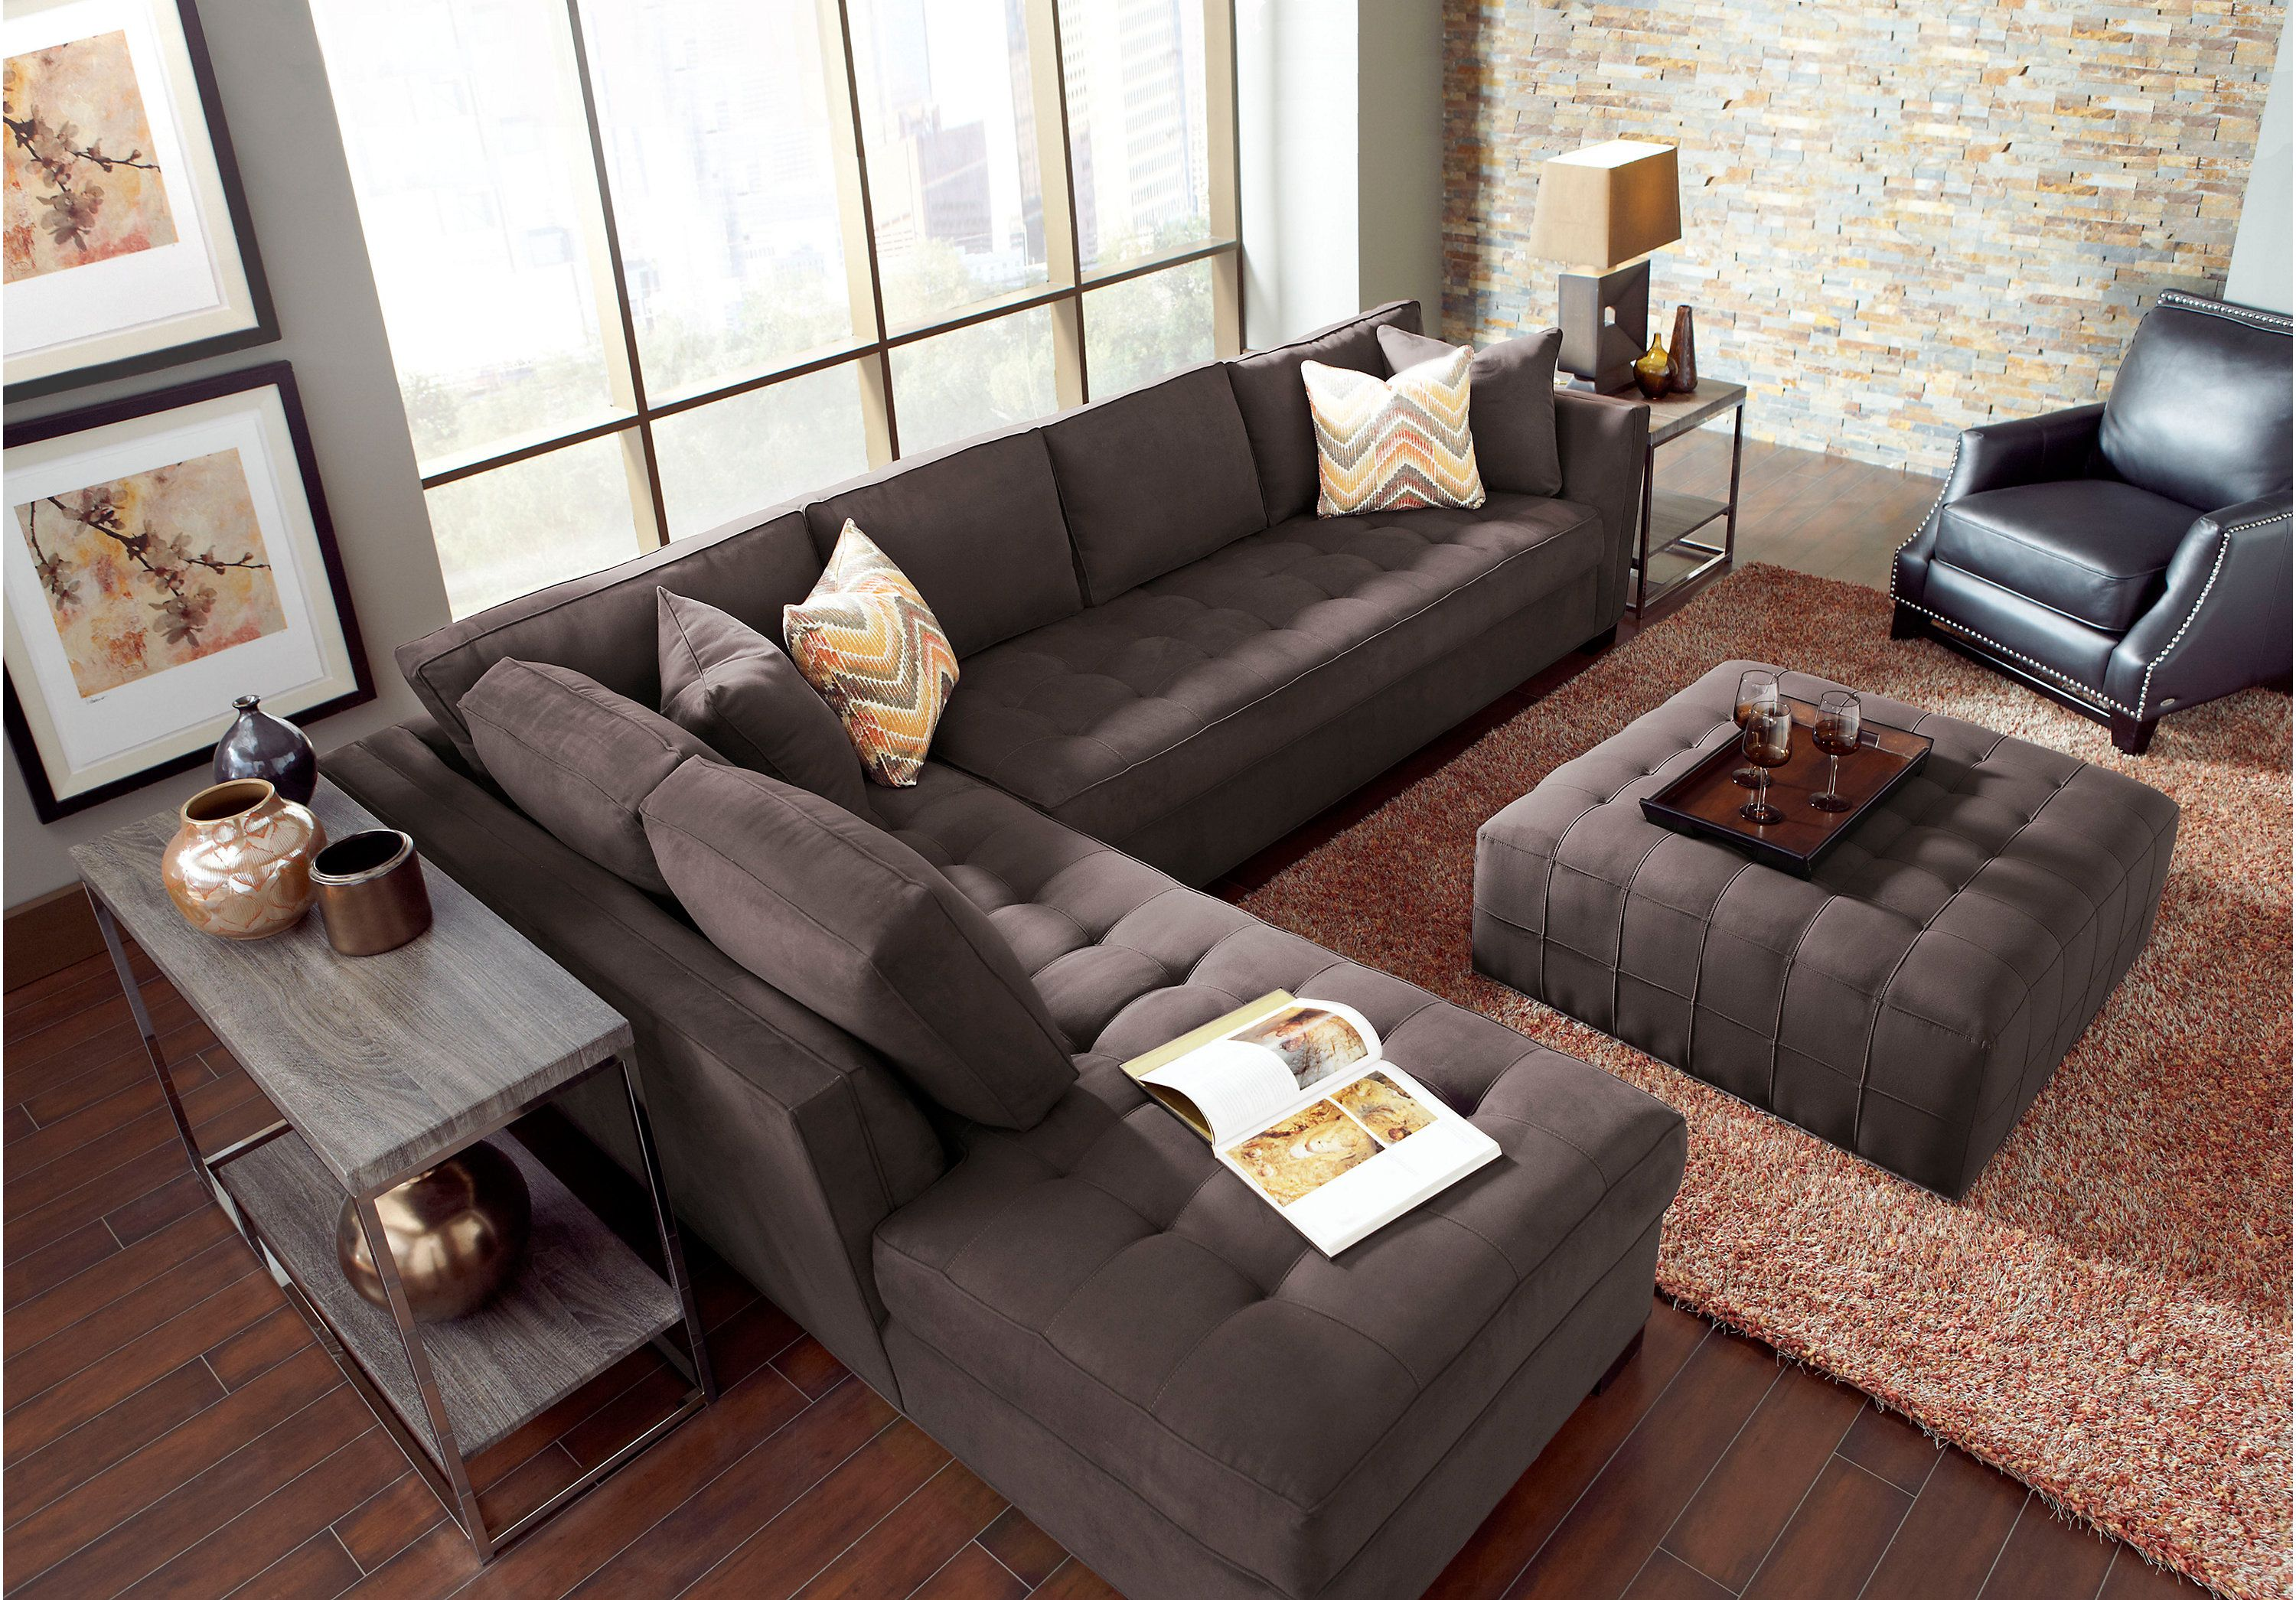 leather review sectional modern service outlet fredericksburg sofa exciting cleaning to rooms gus hemnes couches go big psychic sectionals sofas va nyc table